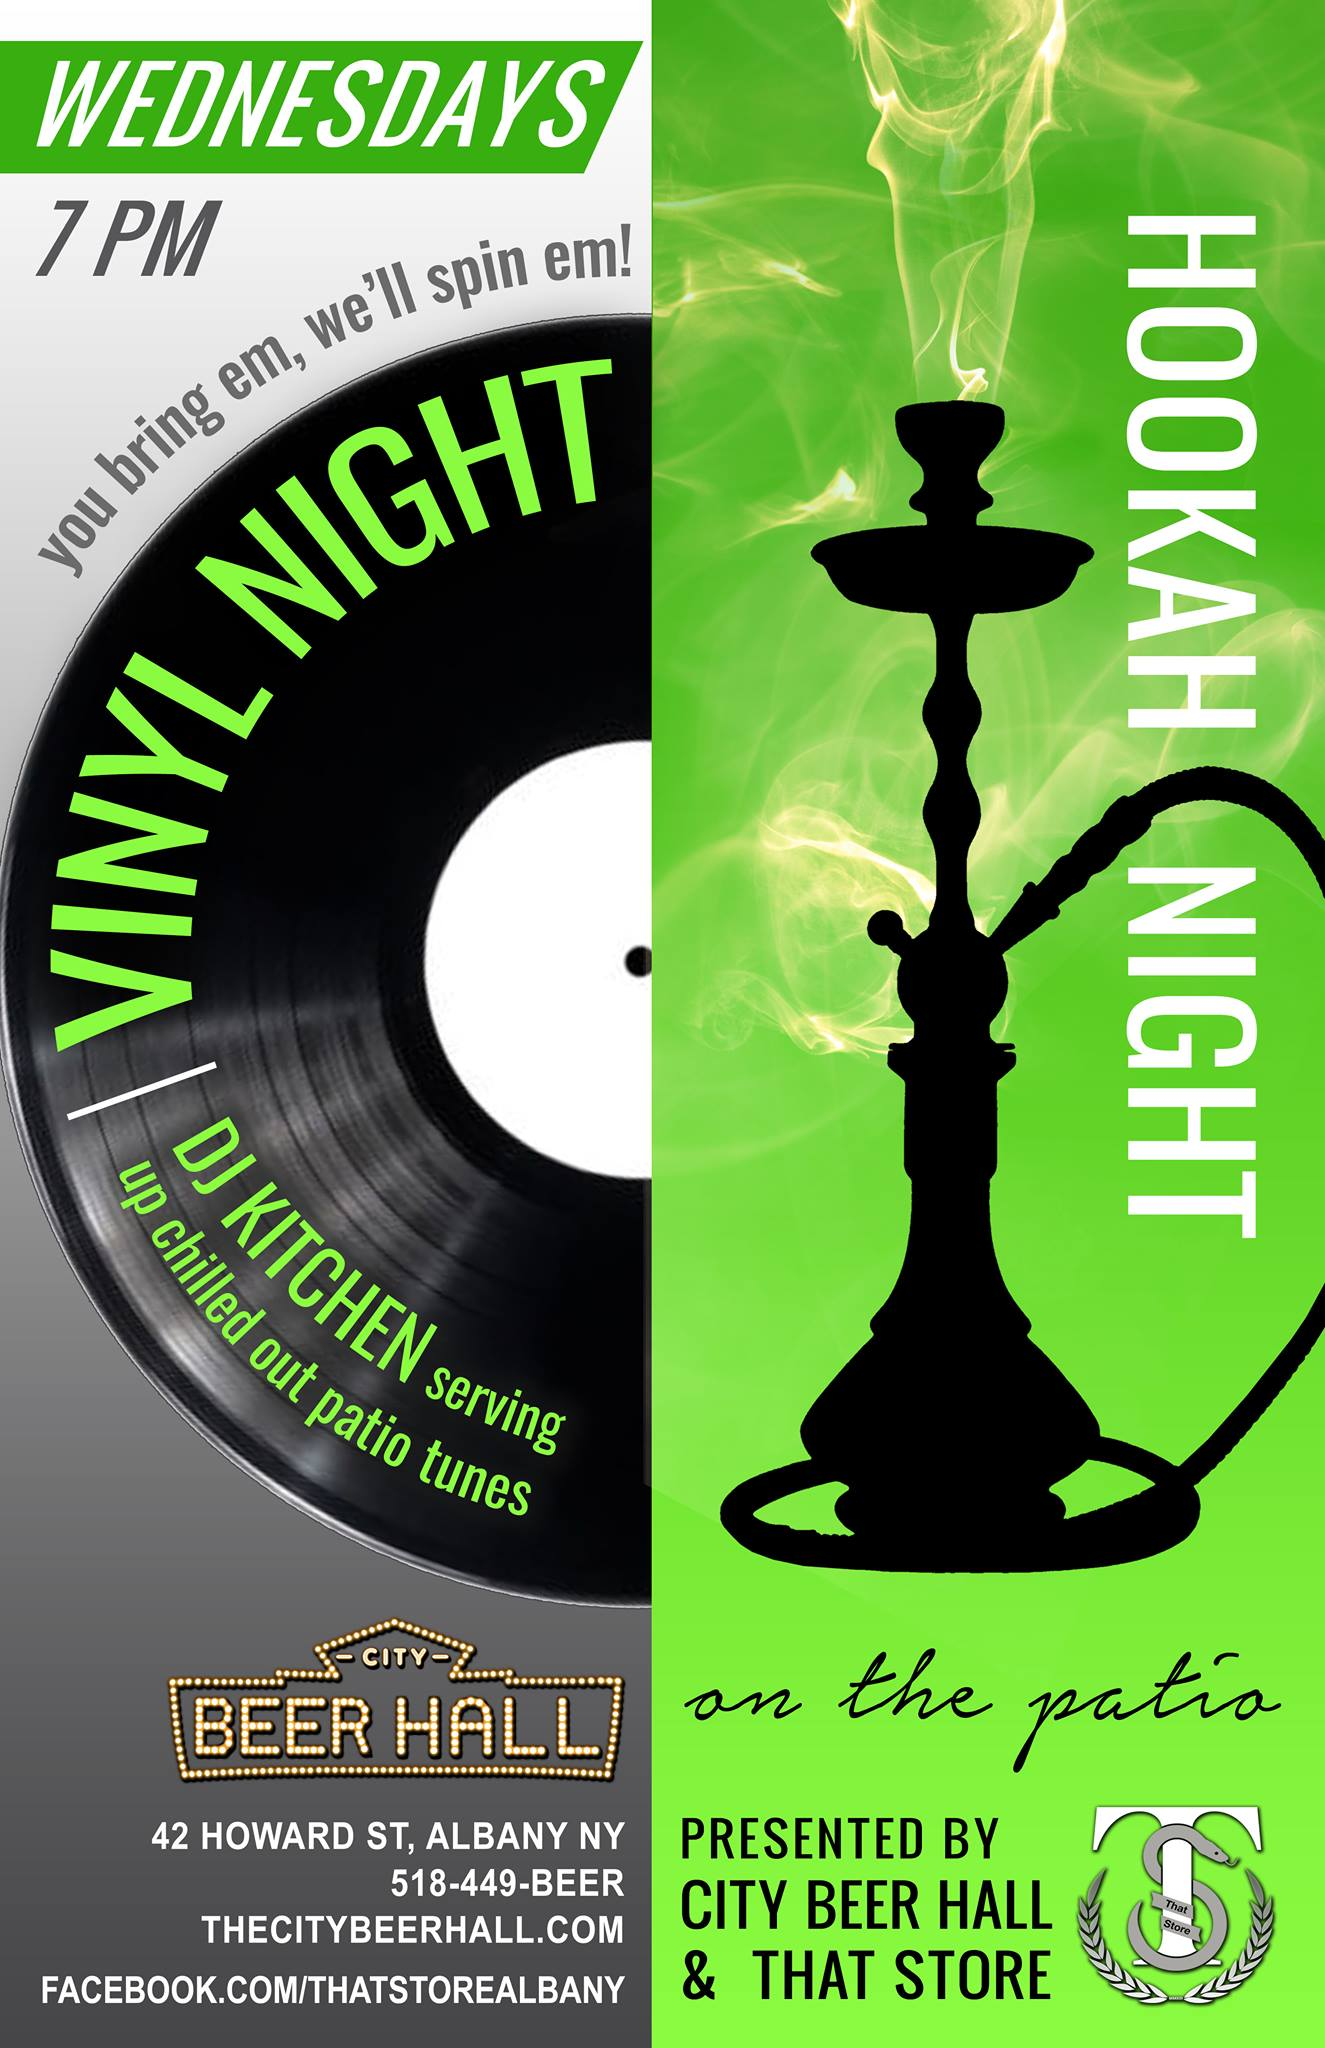 - Every Wednesday we'll be offering Hookah courtesy of That Store on our beautiful outdoor patio.Wednesday is also our Vinyl Night-- bring your own vinyl's and DJ kitchen will spin 'em for you!Come eat some gastropub fare, drink good beer, smoke some hookah, & listen to chill tunes in our little downtown Albany urban oasis.Weather permitting, please call ahead to confirm if the weather is questionable. Hookah is first come, first serve. Hope to see you all there!